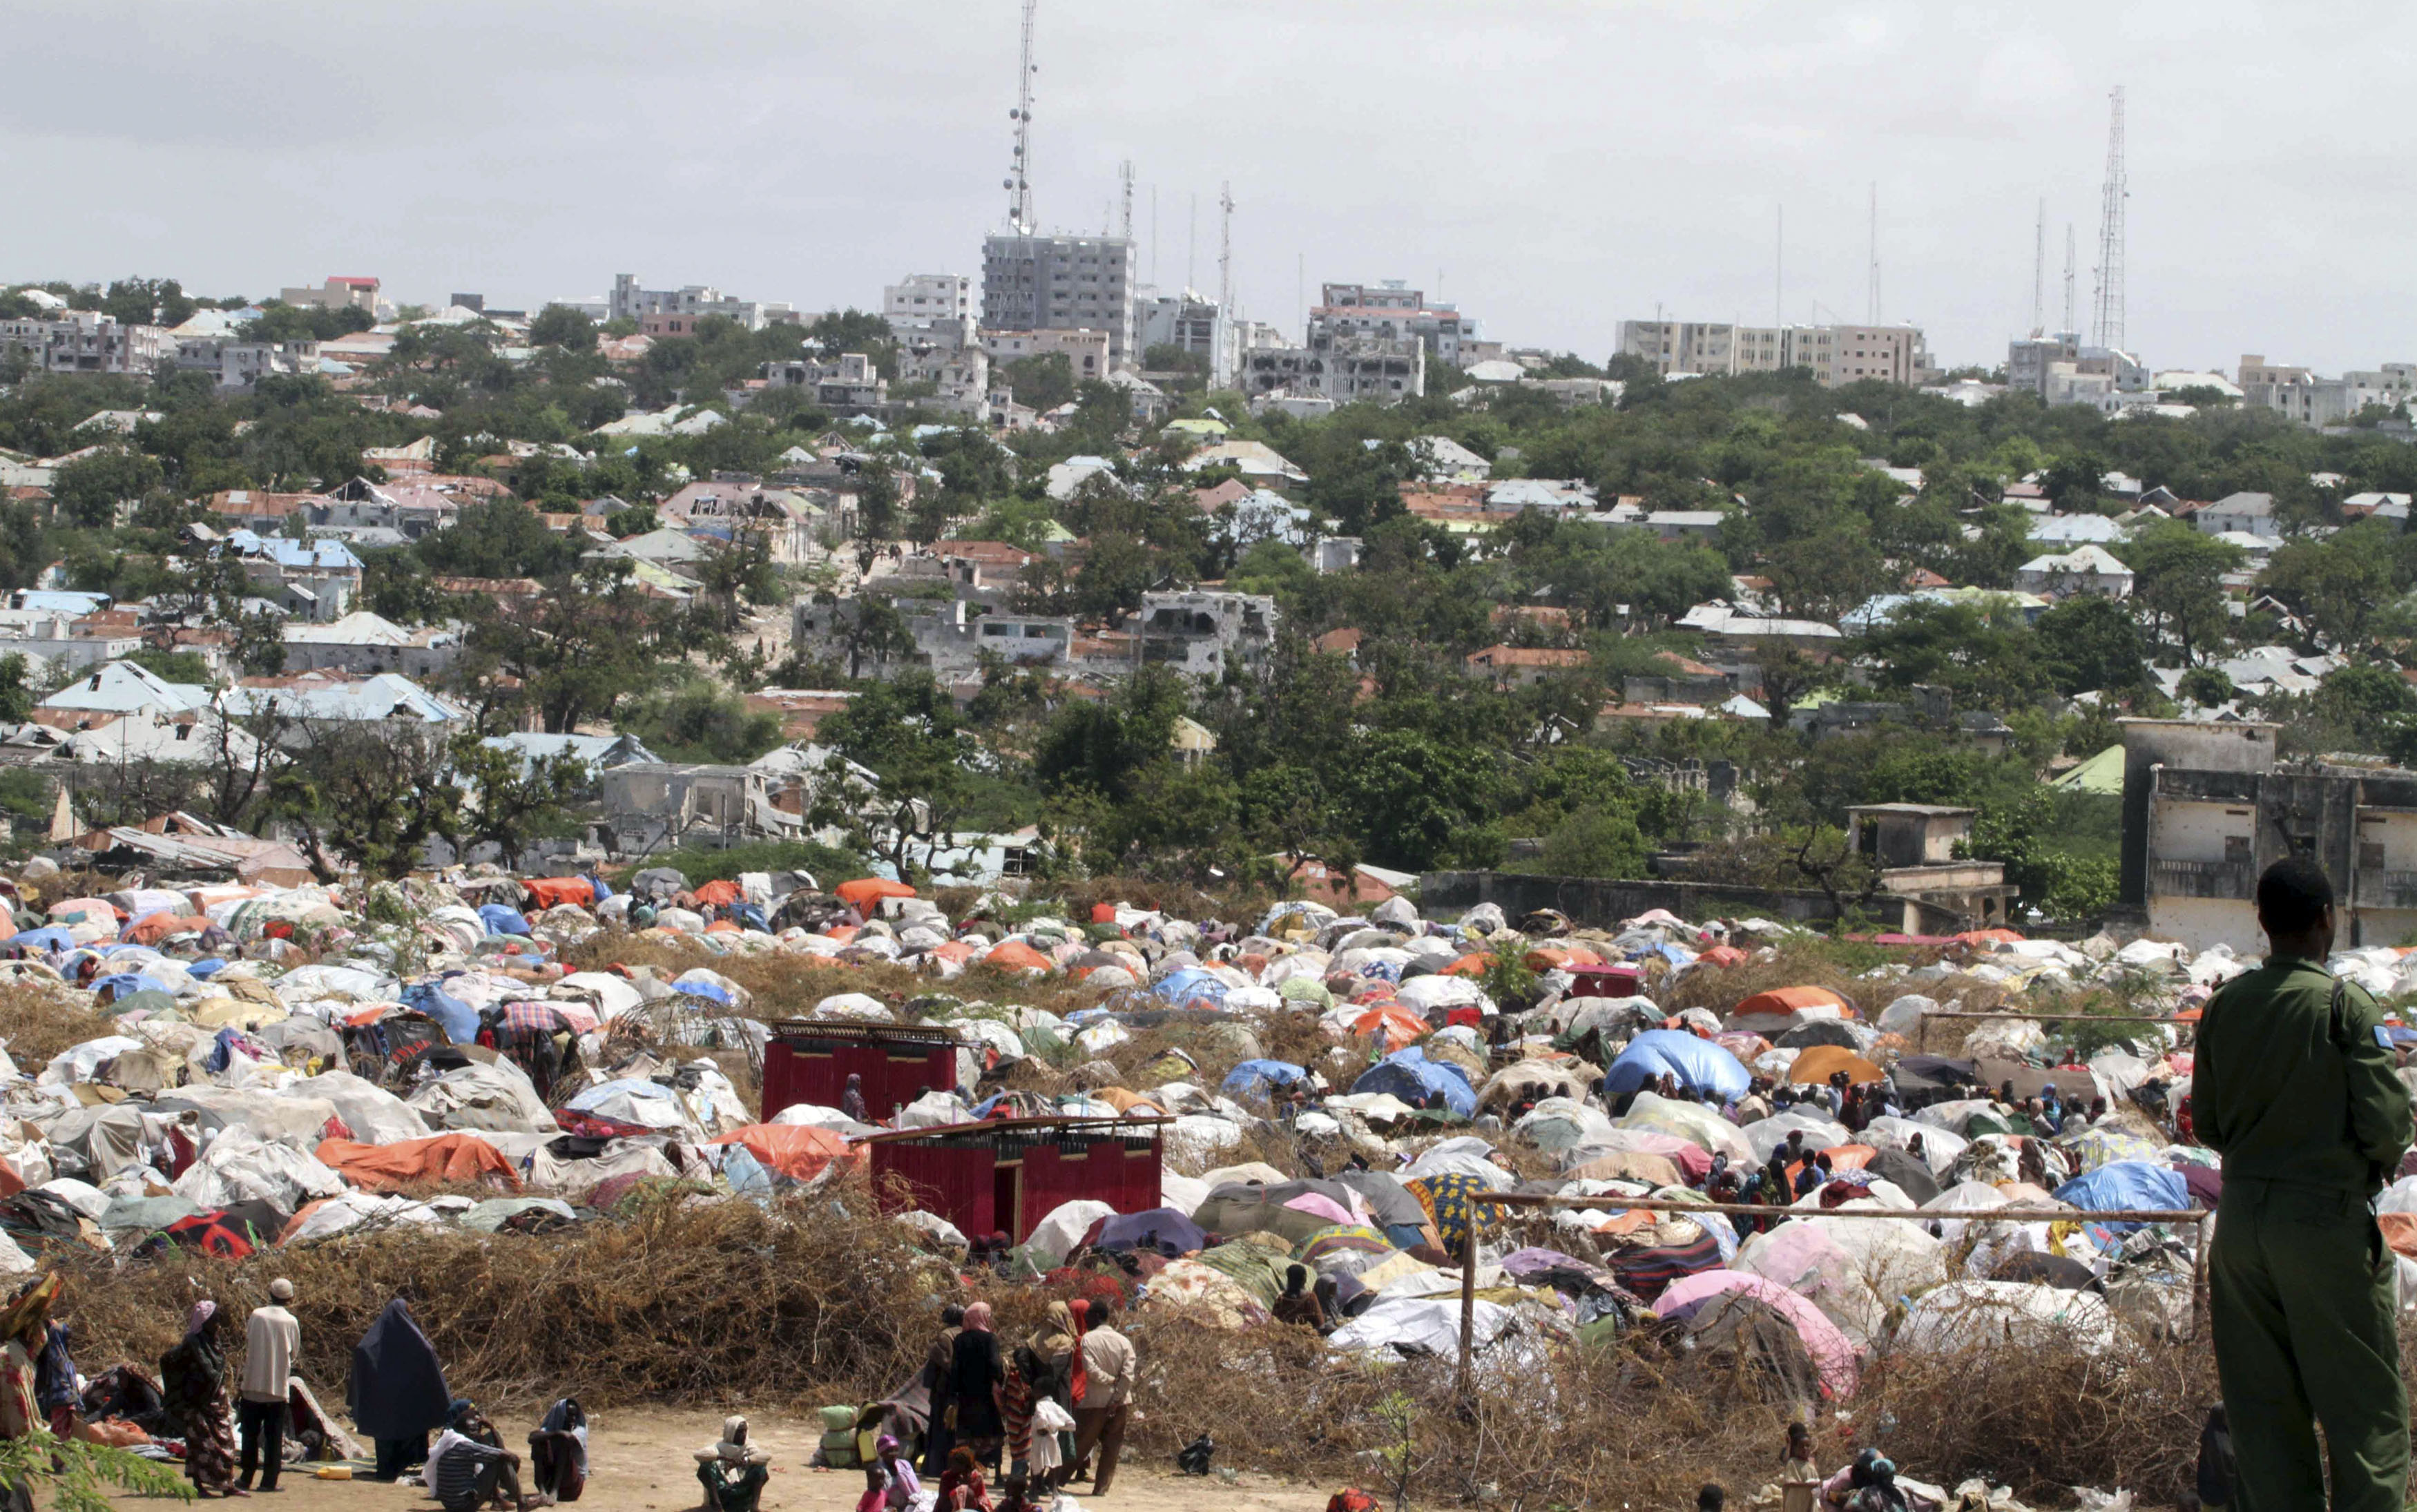 A general view of Camp Seyidka, a settlement for internally displaced people in Somalia's capital Mogadishu. ©REUTERS/Omar Faruk